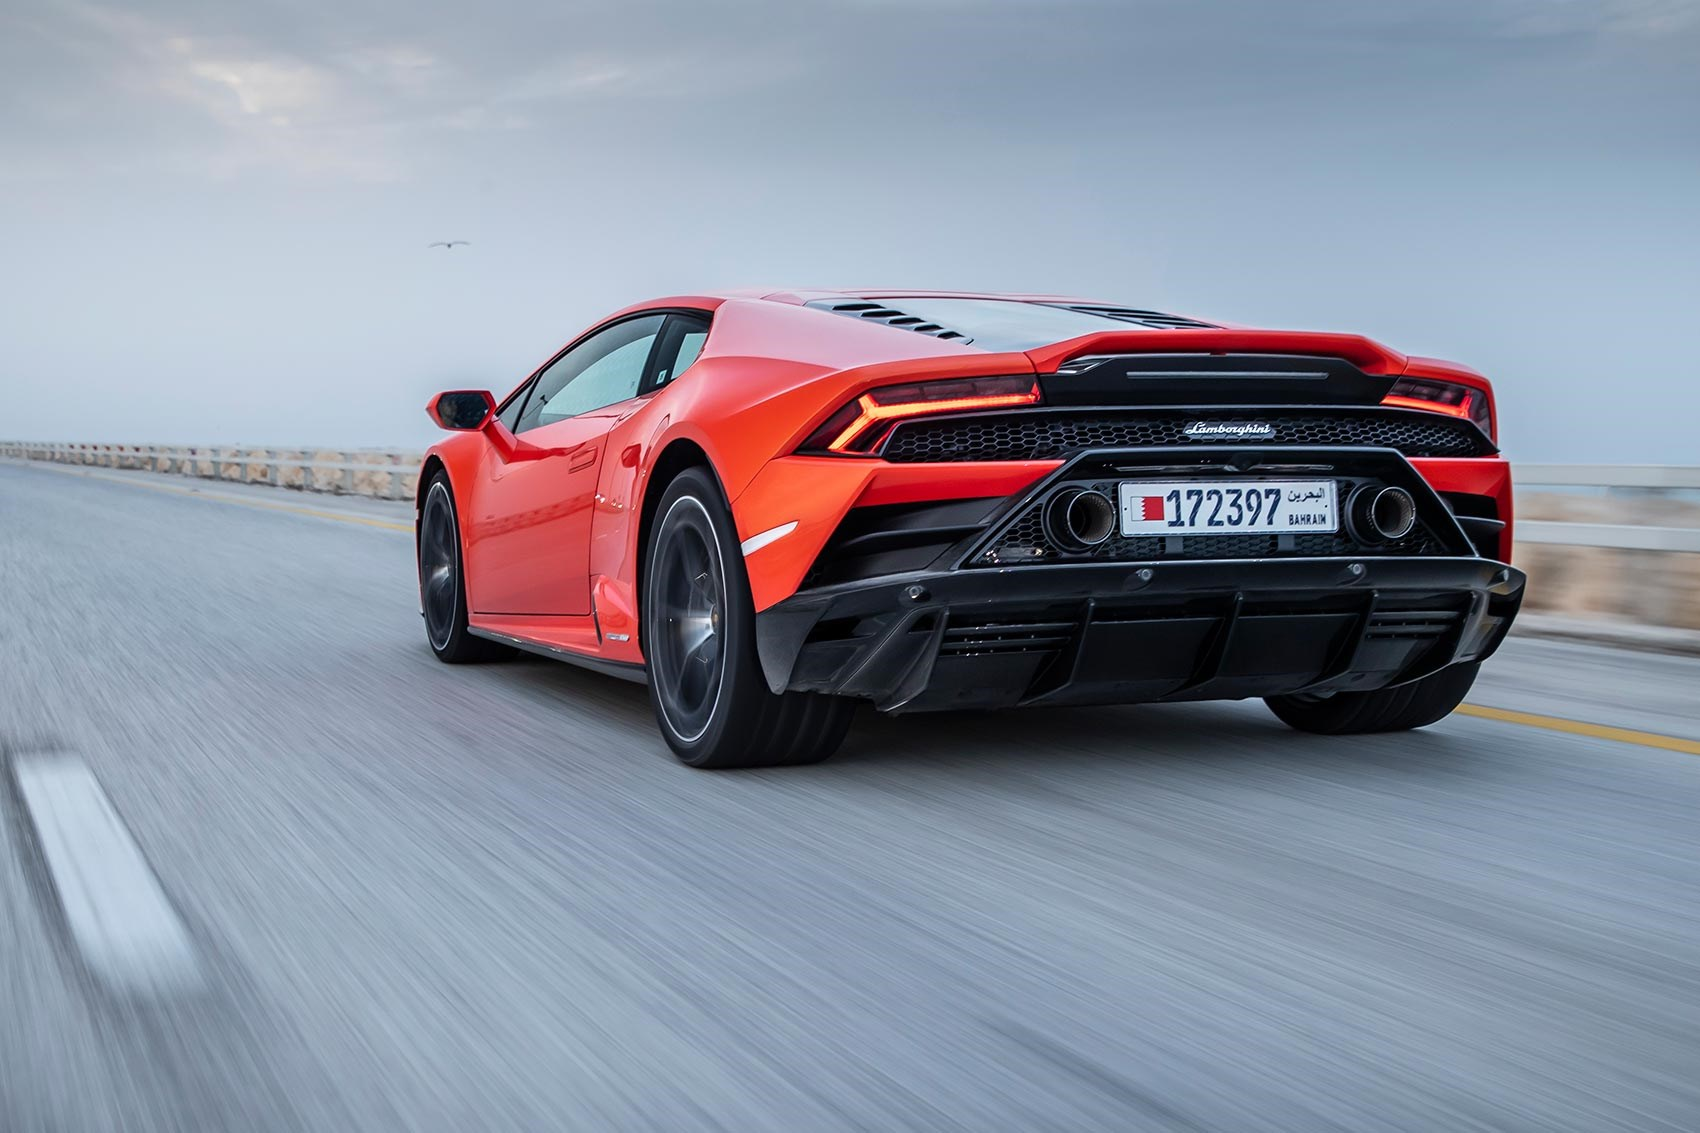 Used Car For Lease >> Lamborghini Huracan Evo review | CAR Magazine